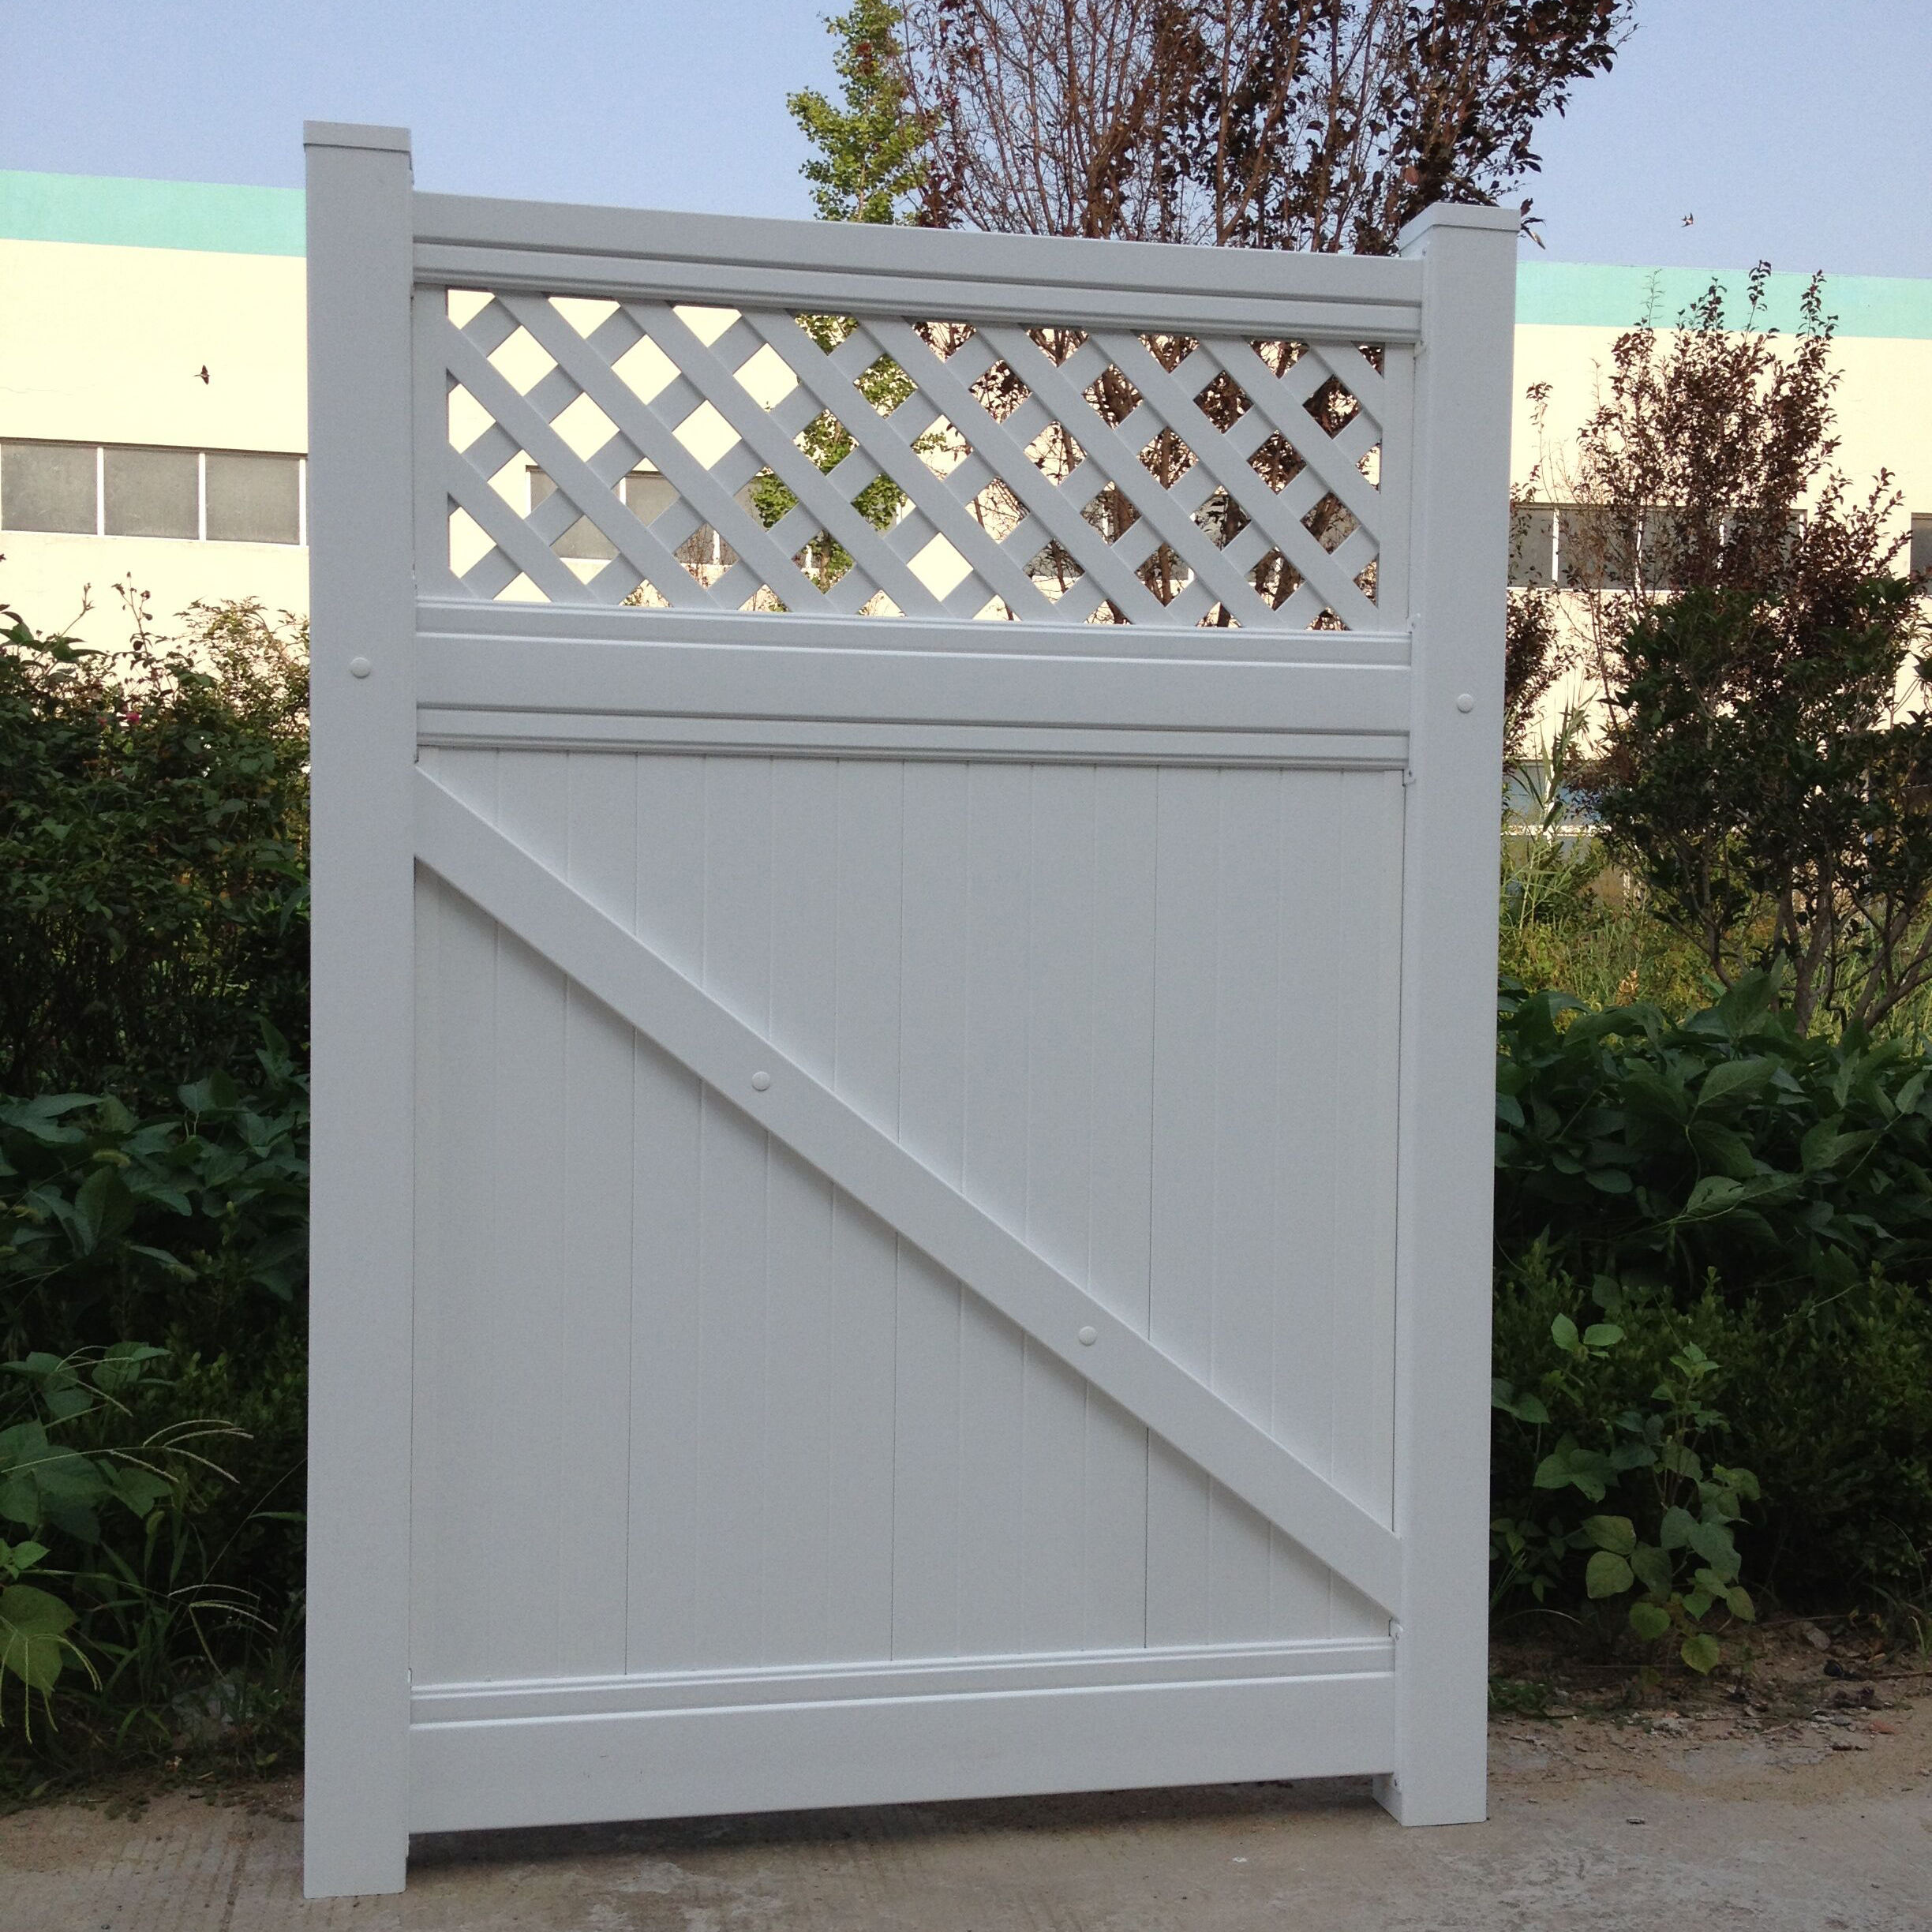 Simple PVC main trellis&gates for house,garden,boundary design